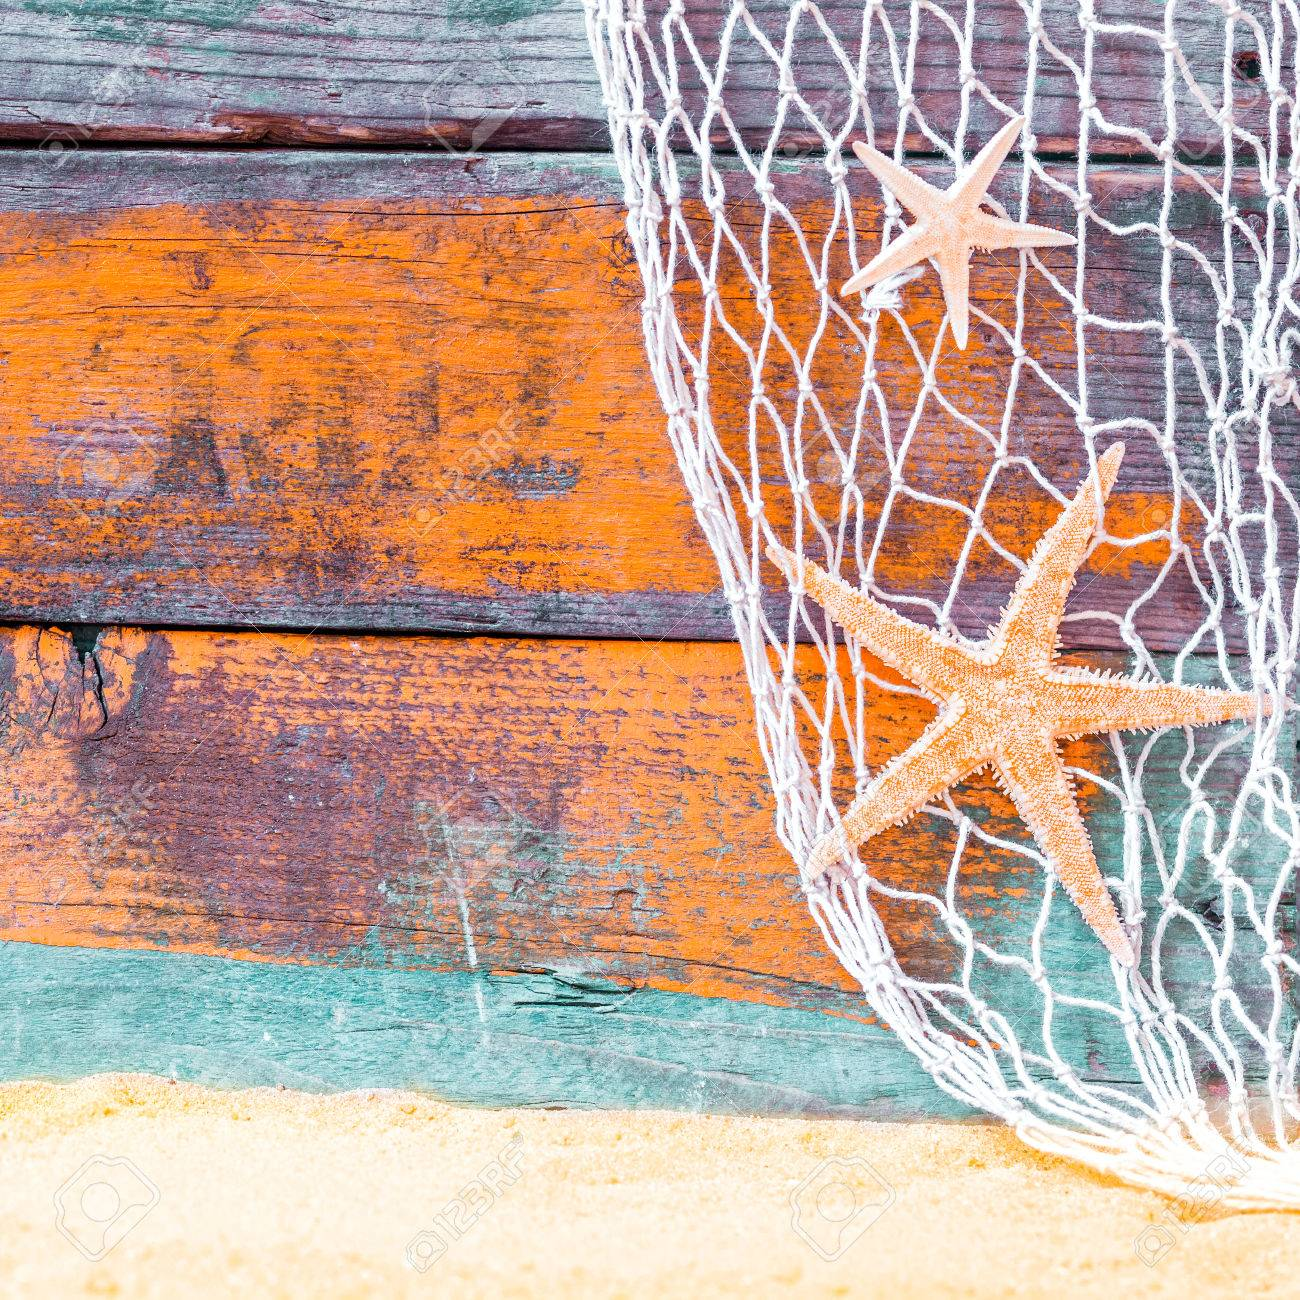 Rustic Nautical Background With Starfish Hanging In A Fishing Net Against Weathered Painted Wooden Boards